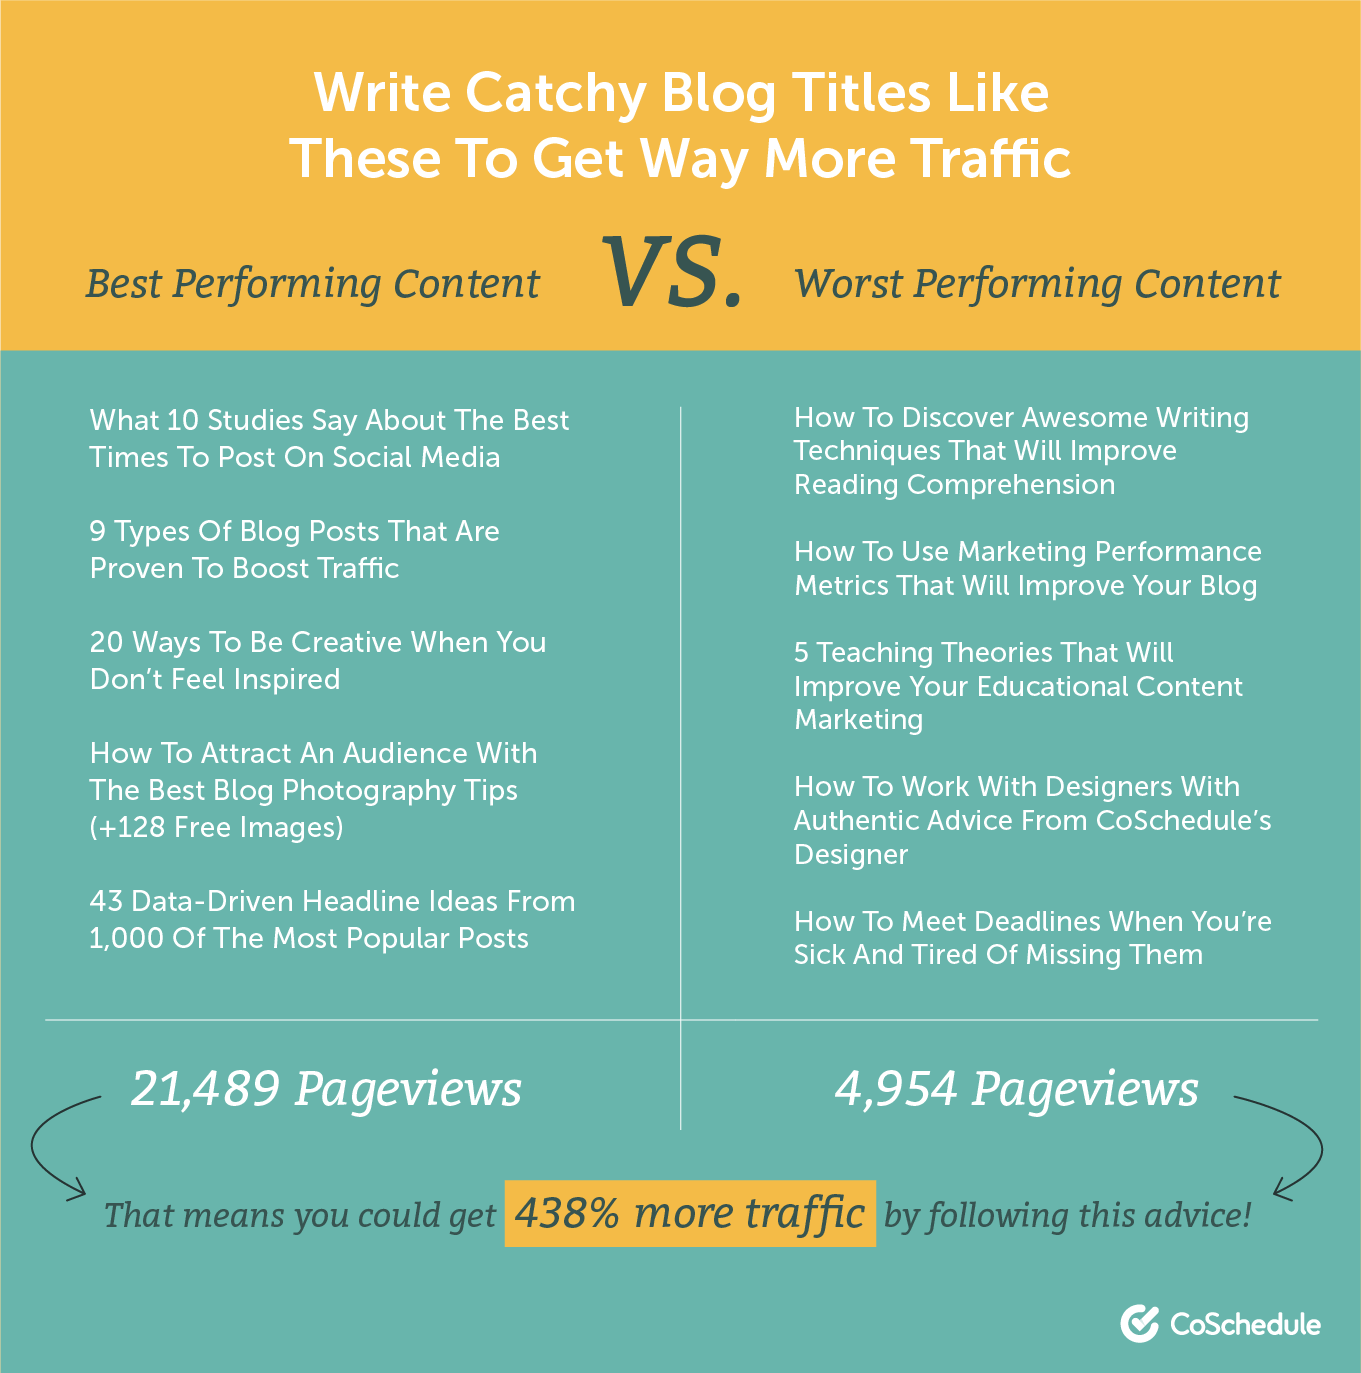 Write catchy blog titles to drive traffic